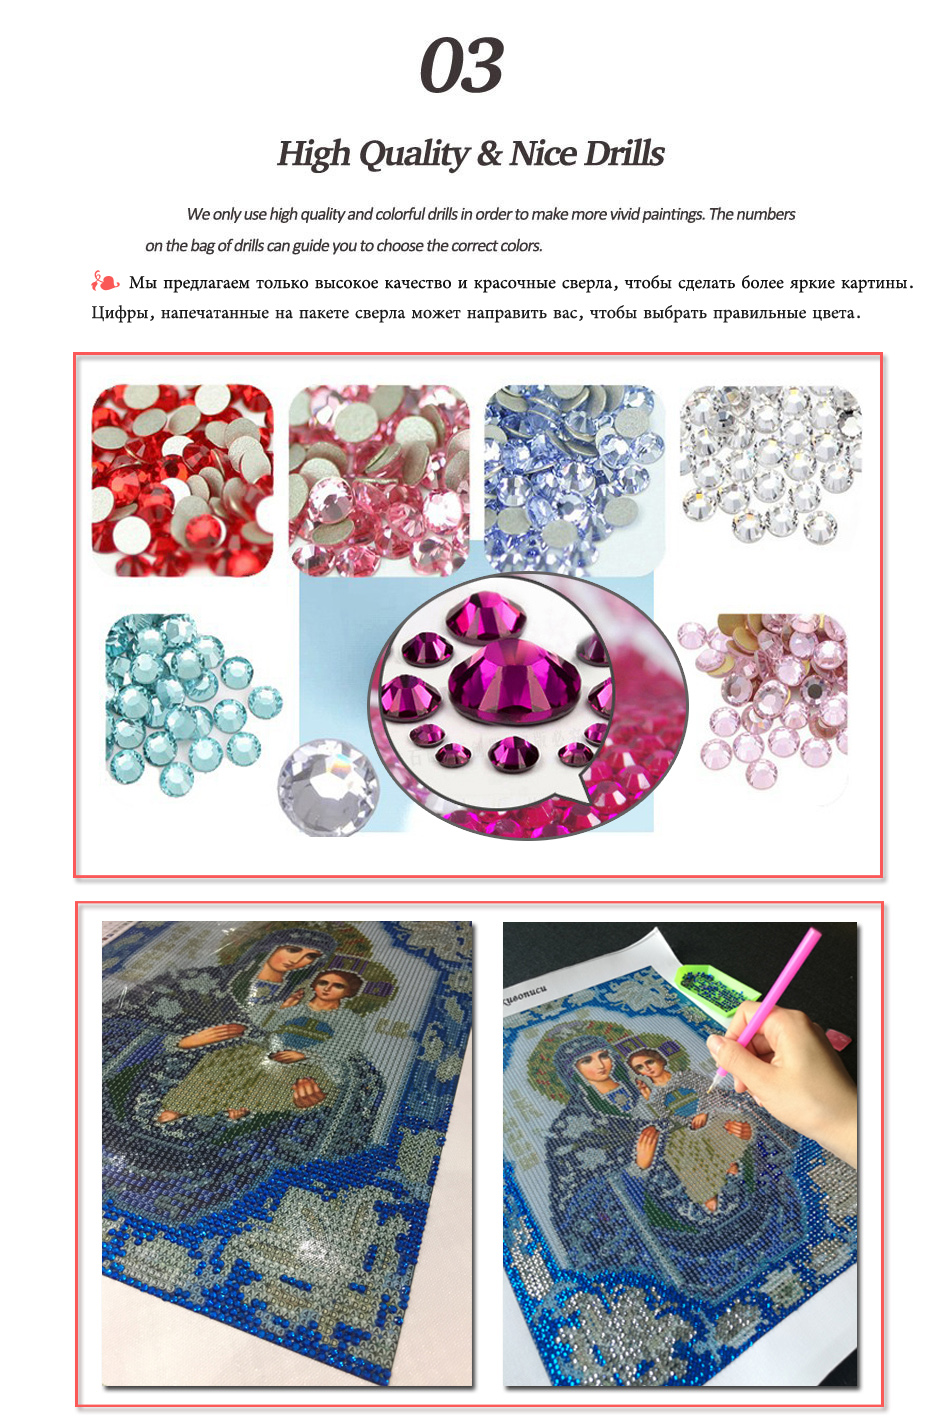 DIY 5D Partial Pasting Area diamond embroidery religions religious Icons diamond painting cross stitch 3D round crystal Patterns rhinestones needlework face and hands printed mosaic (5)